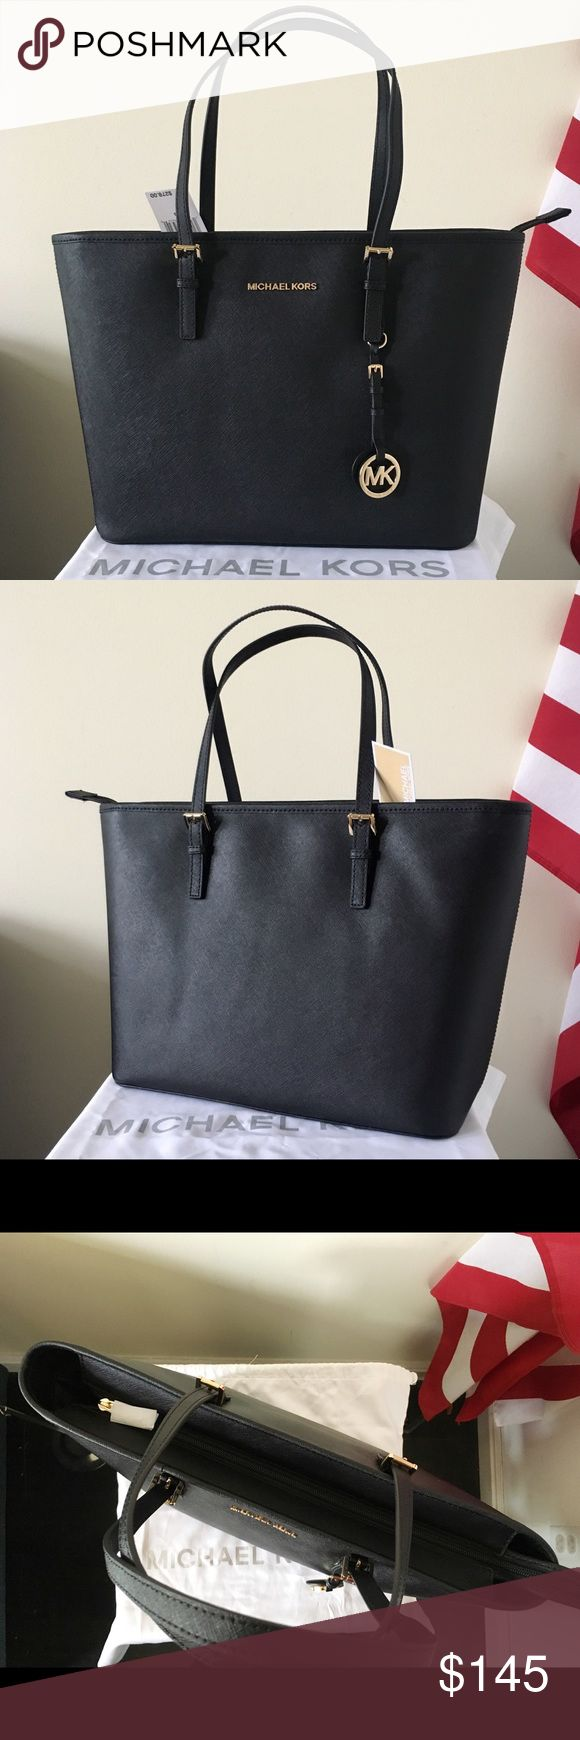 NWT Michael Kors TZ Black Tote Classic tote. Great for all occasions. Saffiano leather. Zipper closure. New with tags. Authentic.  Measurement: 17*10.5*6.5 inch  Dust bag and paper shopping bag are included Michael Kors Bags Totes